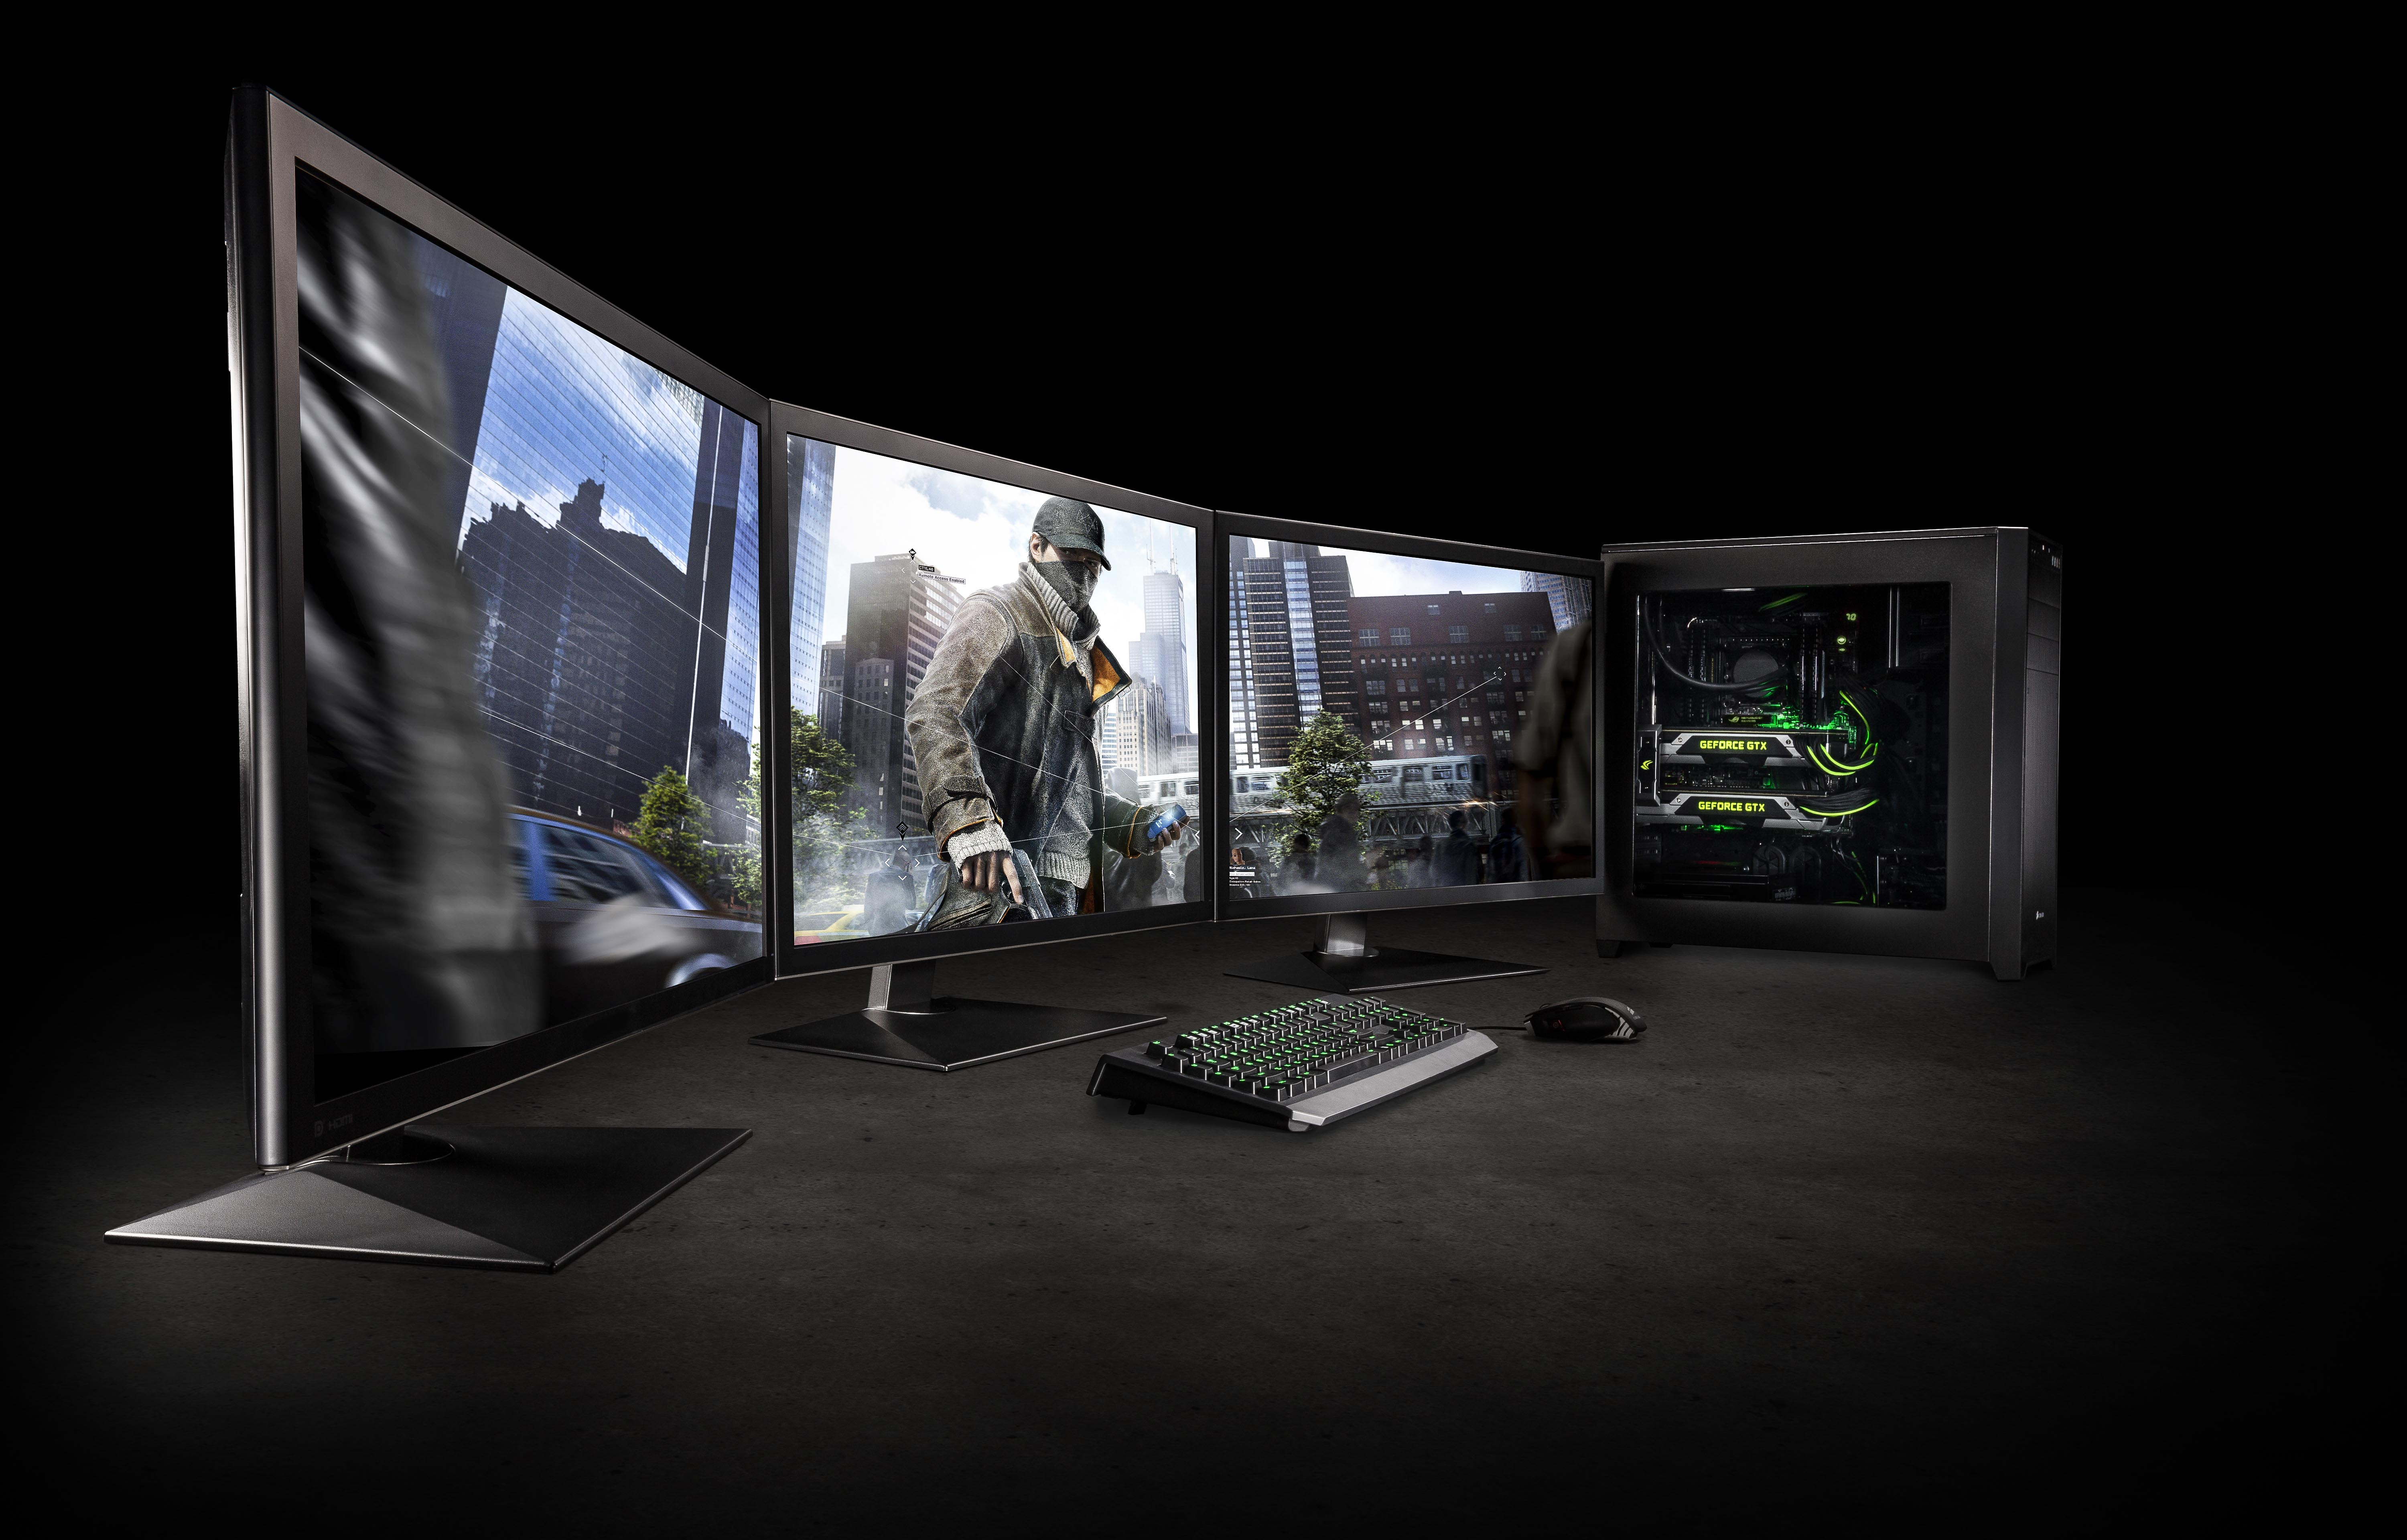 Since this re-emergence, NVIDIA has worked closely with VR firms to ...